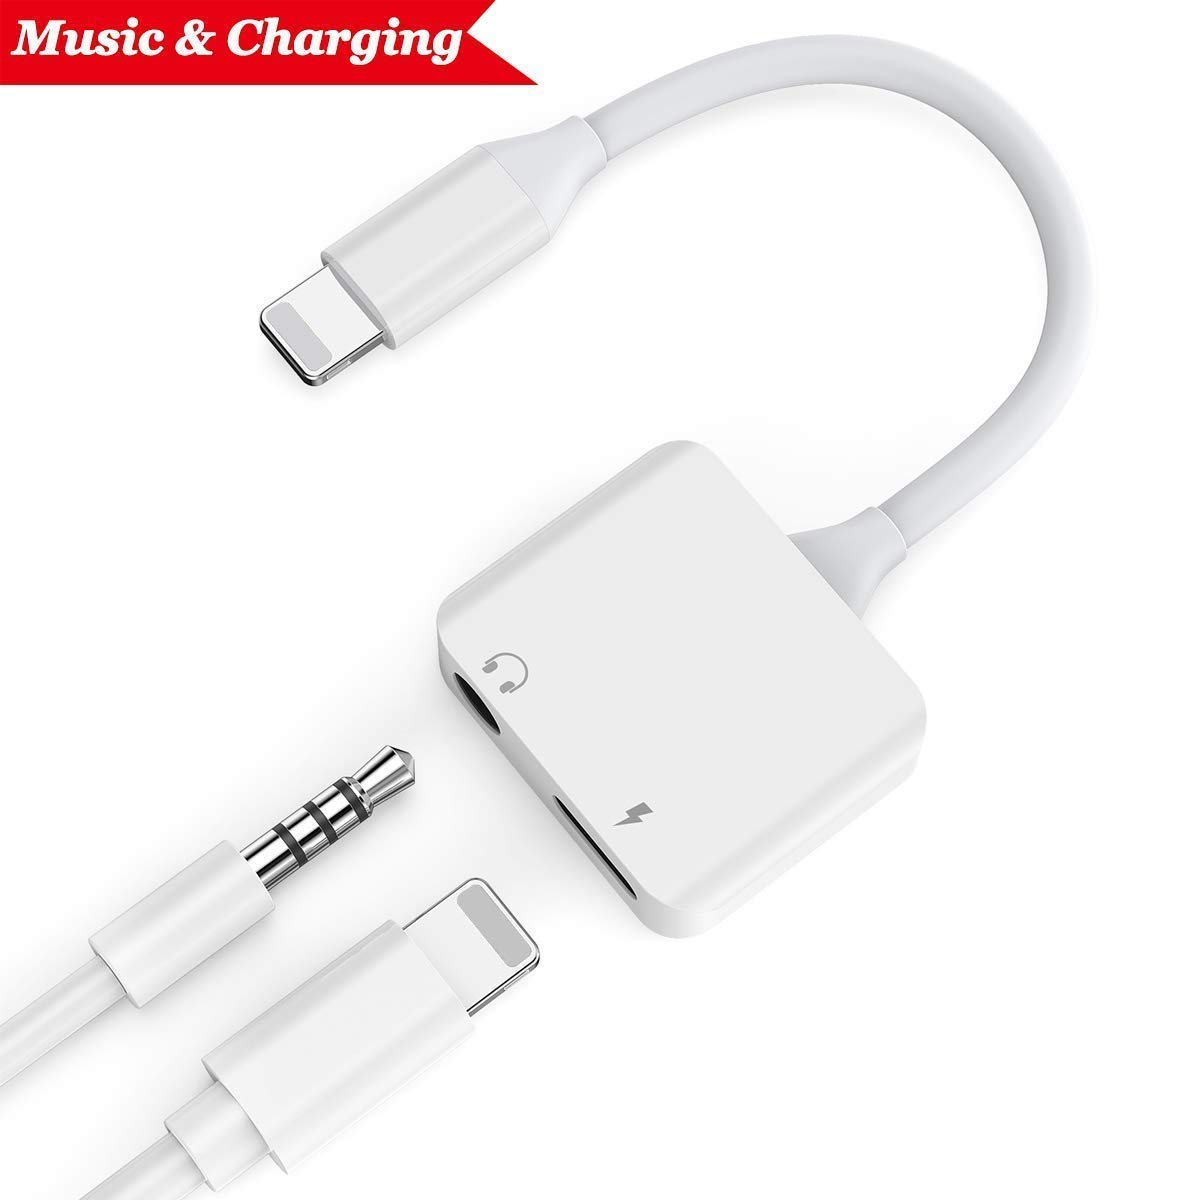 Headphone Jack Adapter for iPhone Xs Adapter Earphone Audio Splitter and Charger Connector for iPhone X/XS /XR/XS max/7/7 Plus /8/8Plus Support to Listen Music and Charger Support iOS 12 System -White iNassen